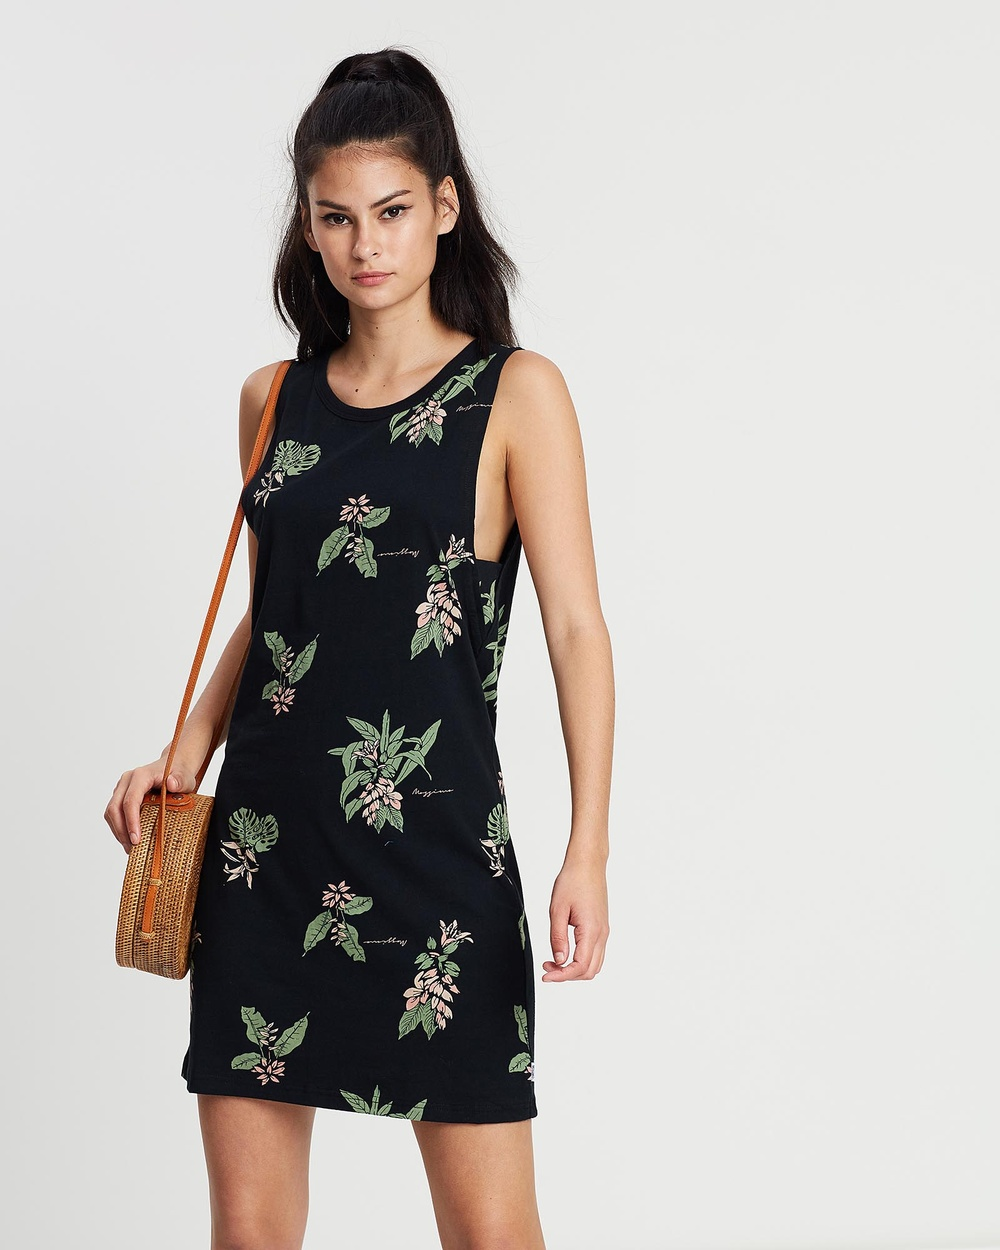 Mossimo Vintage Black Azalea Dress